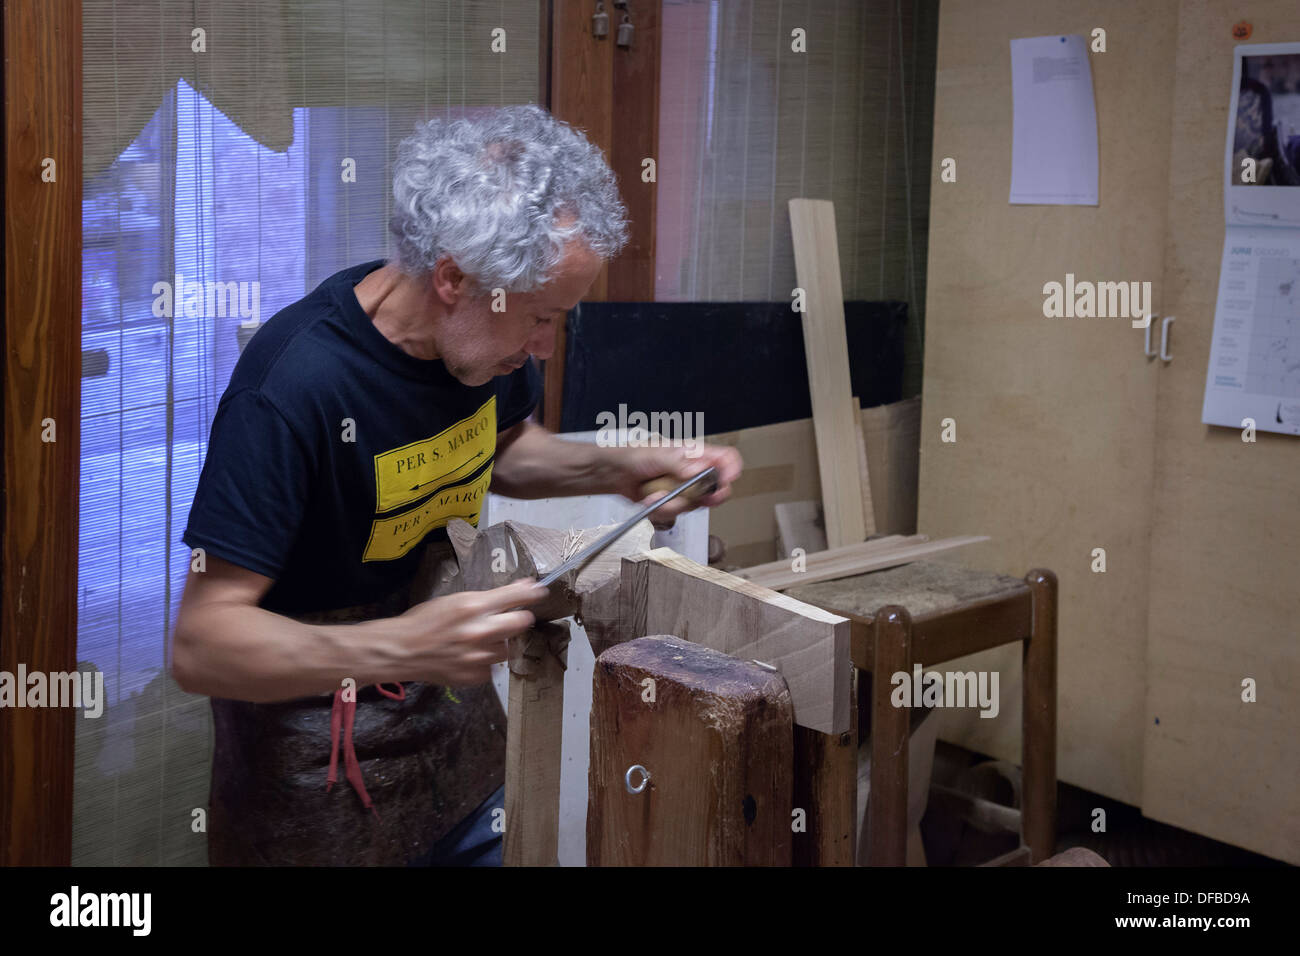 A specialized joiner cutting down to size an oarlock for a Venetian craft known as 'Mascaretta' (Italy). Fabrication de forcole. - Stock Image